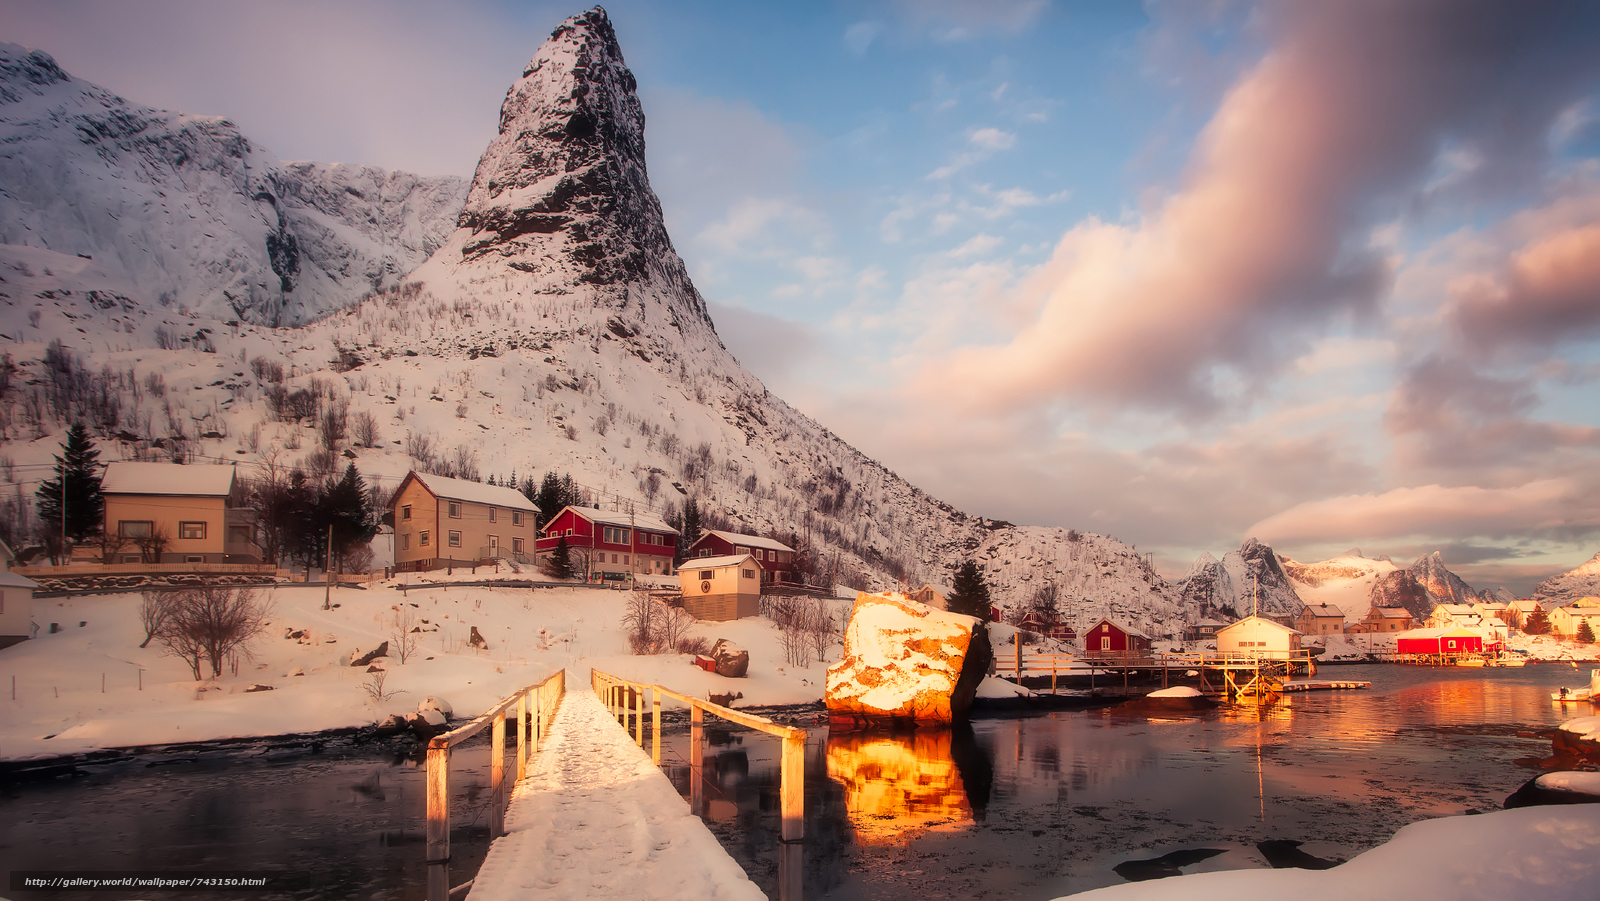 Lofoten, Norway, Lofoten, island, winter, snow, the mountains, rock, houses, water, sky, landscape, nature, view, vertex, clouds, bridge, Coast